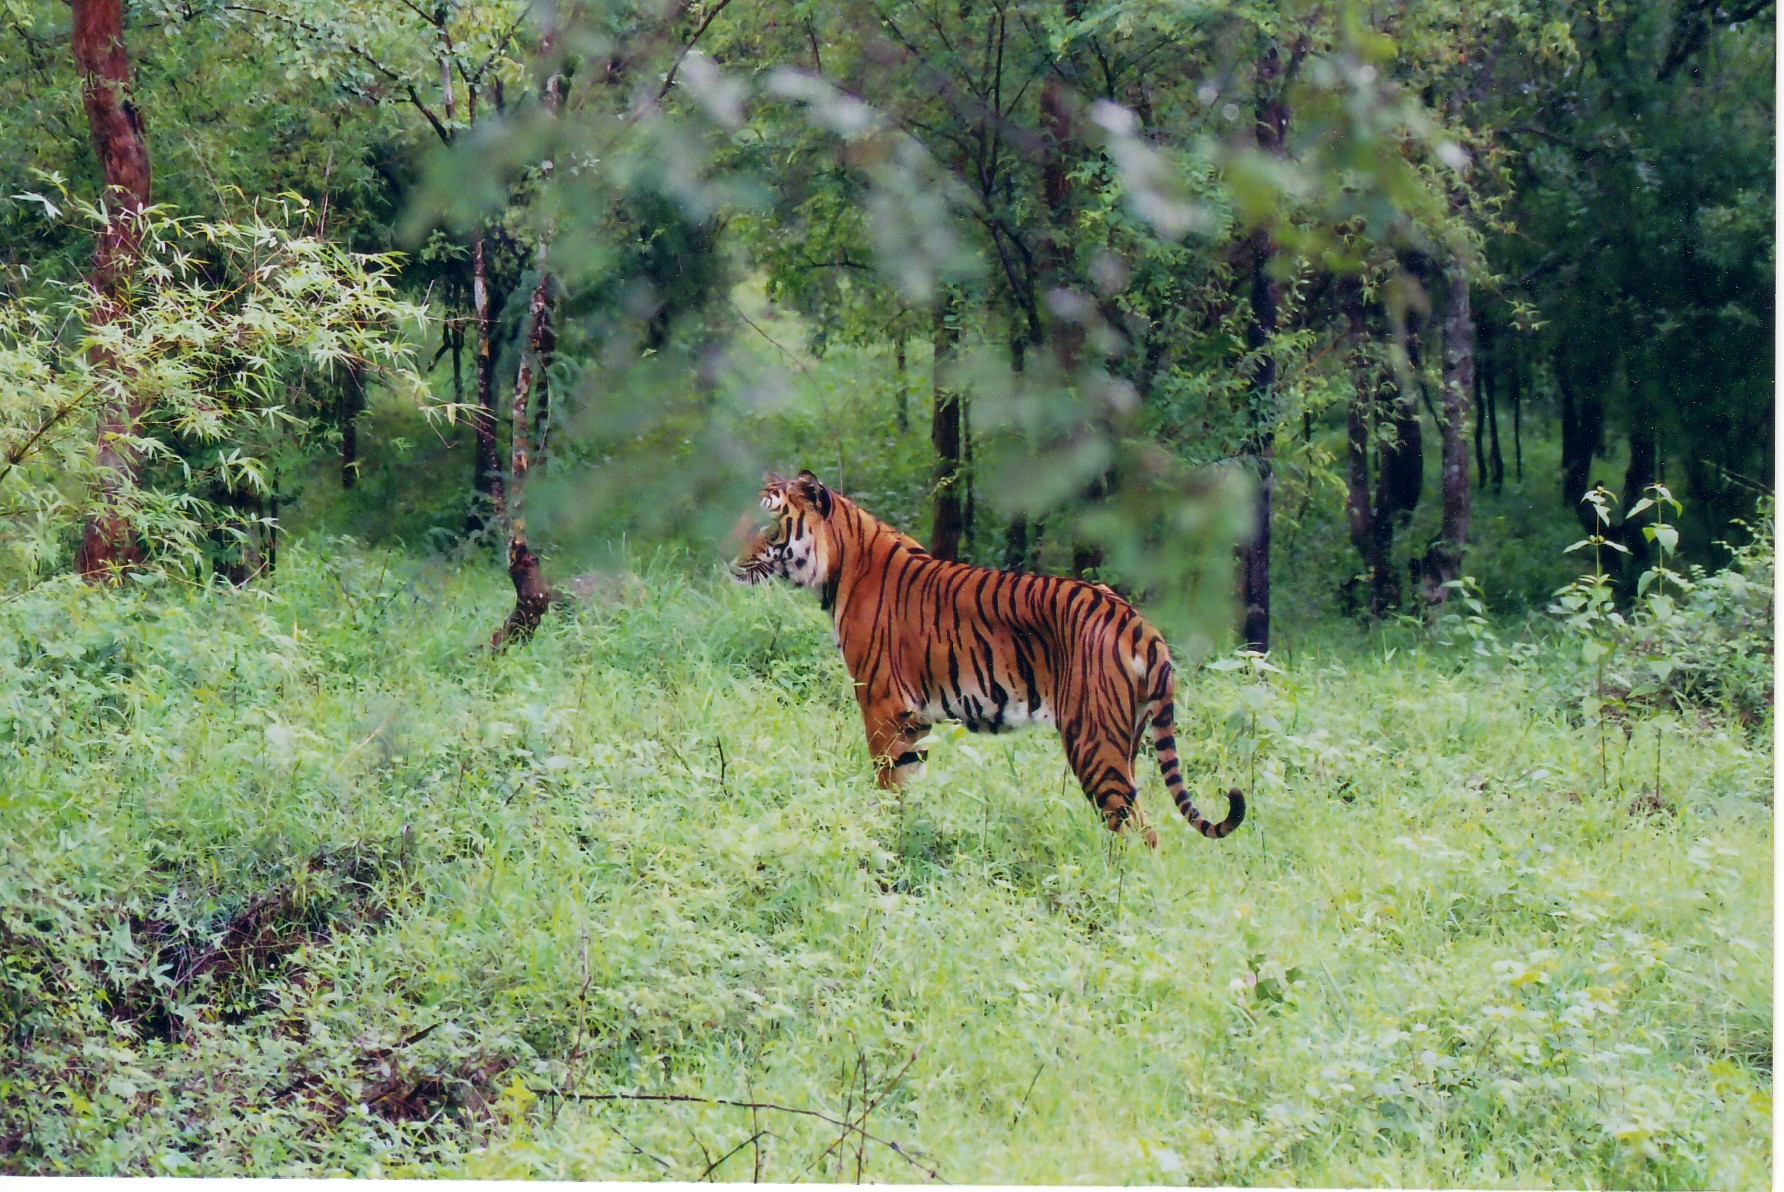 An Indian tiger at Bhadra wildlife Sanctuary